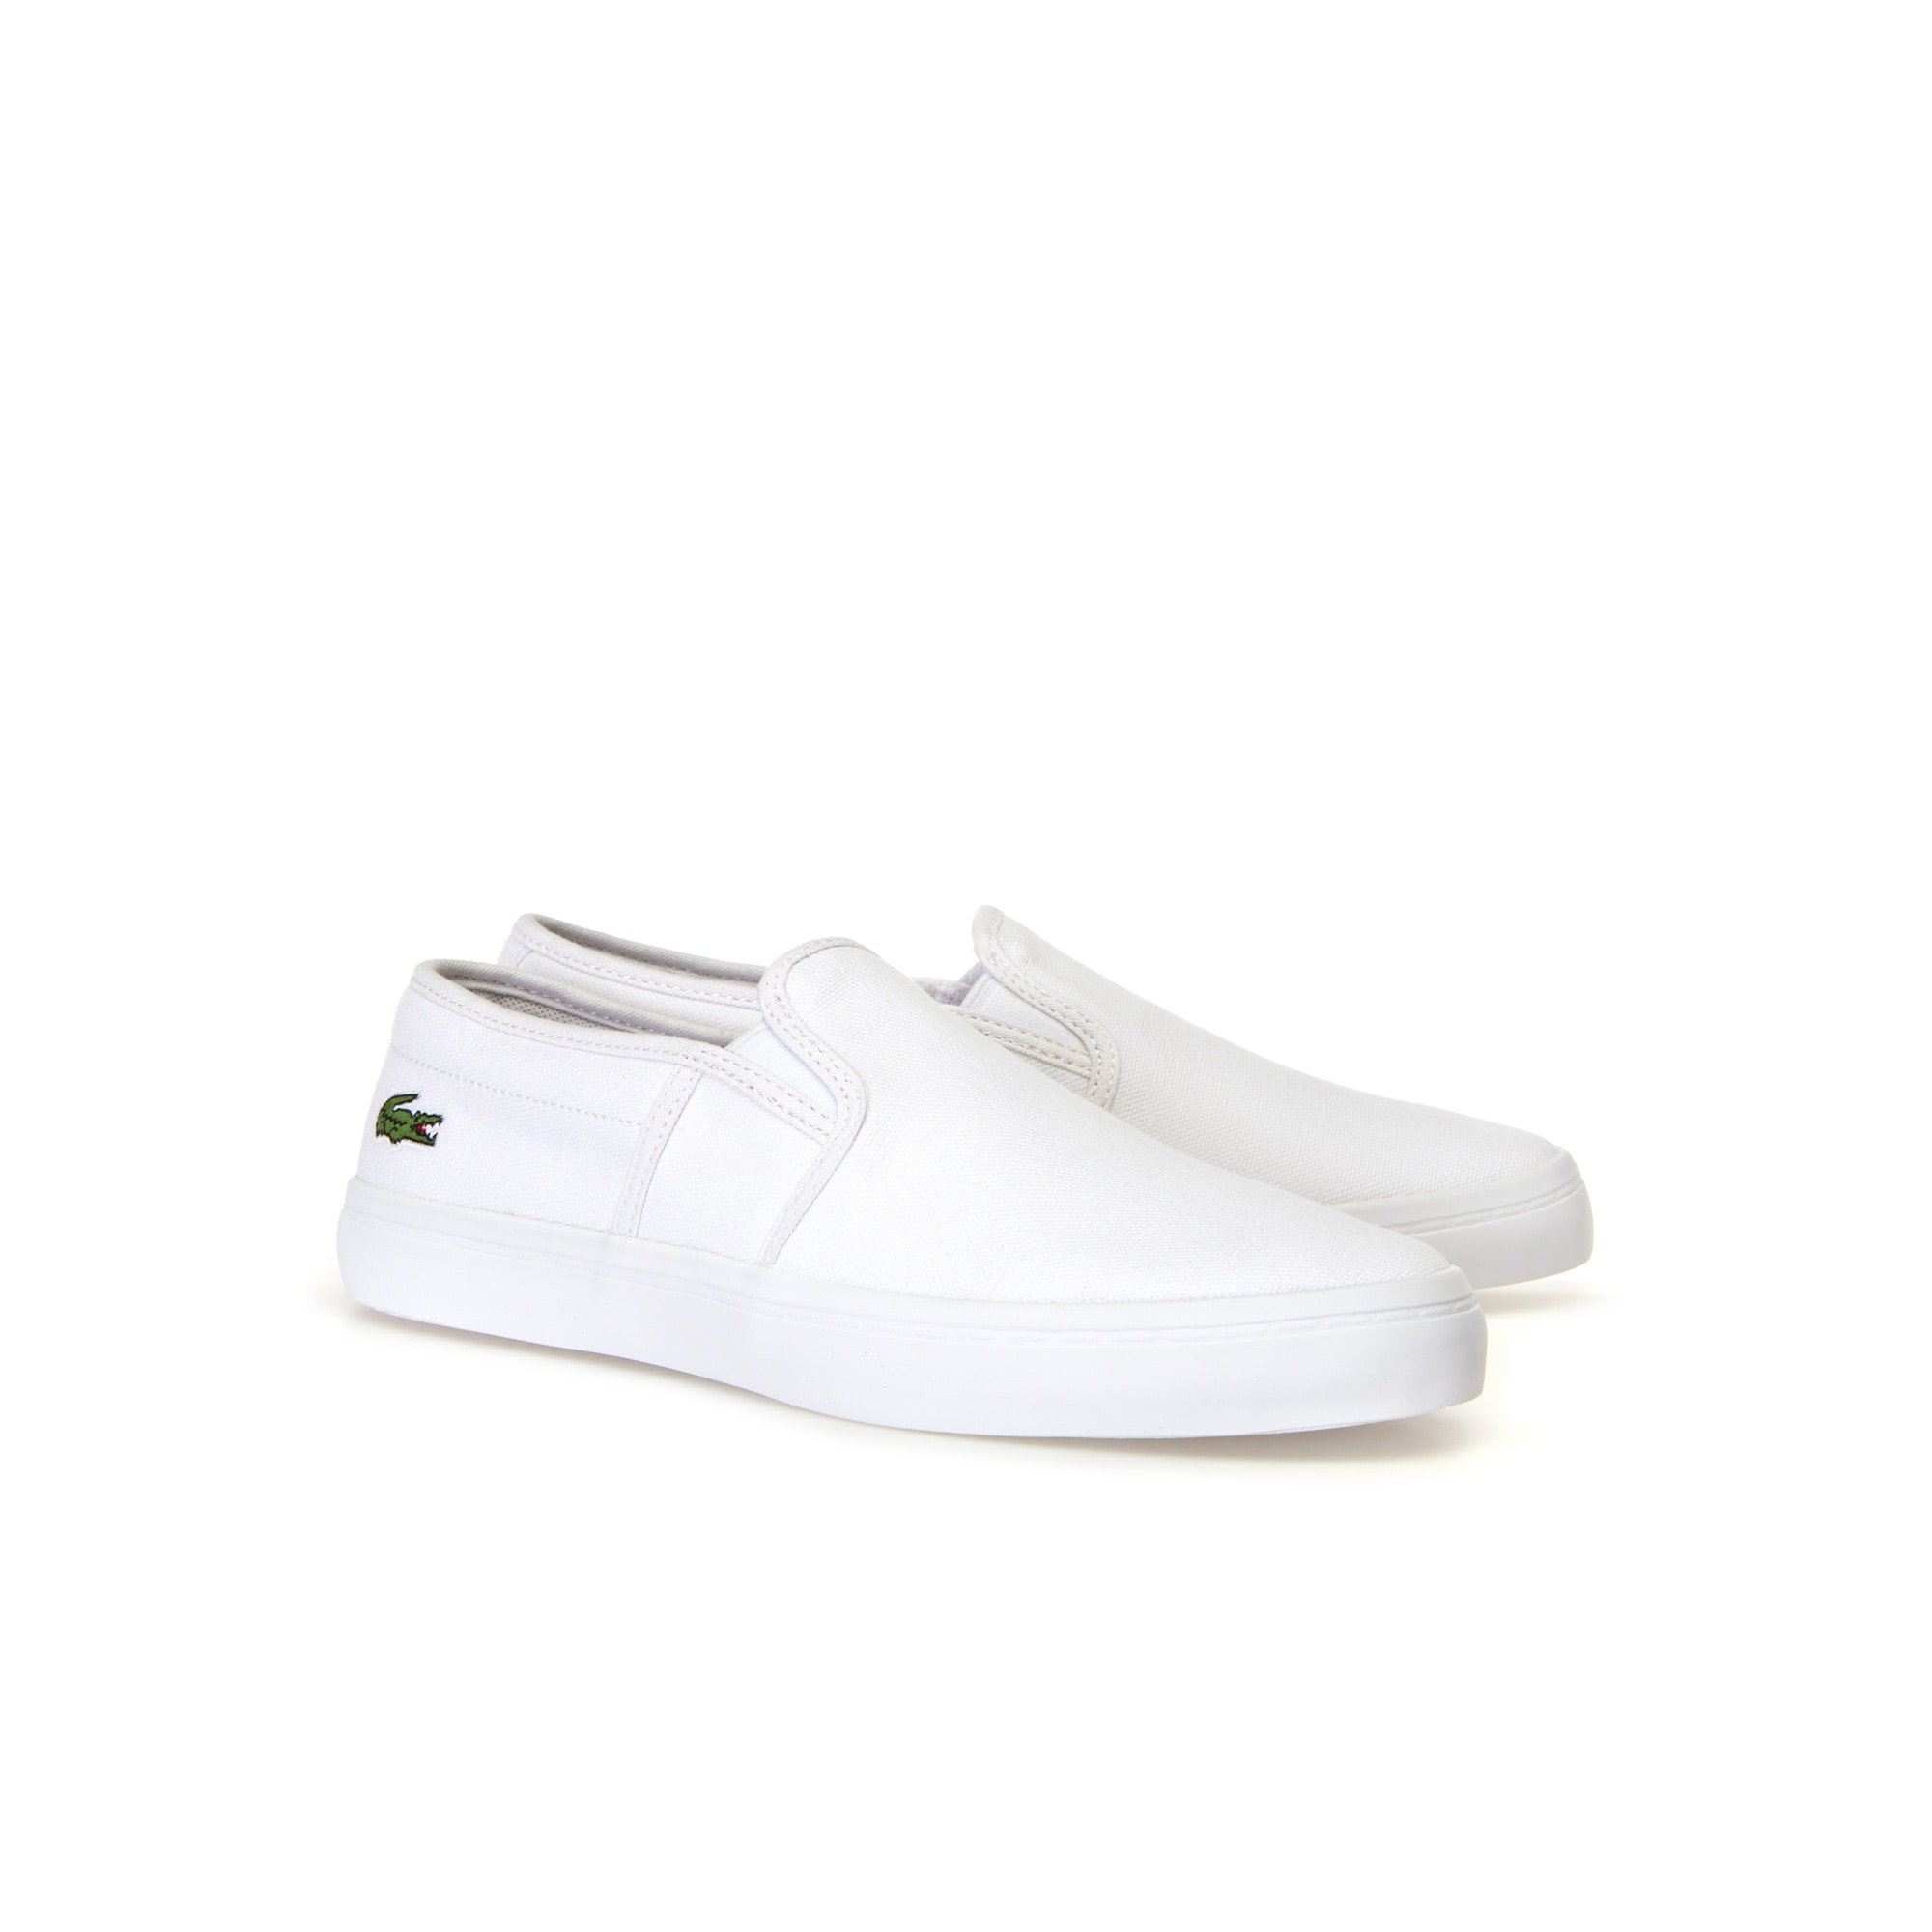 Women's Gazon BL Canvas Slip-ons